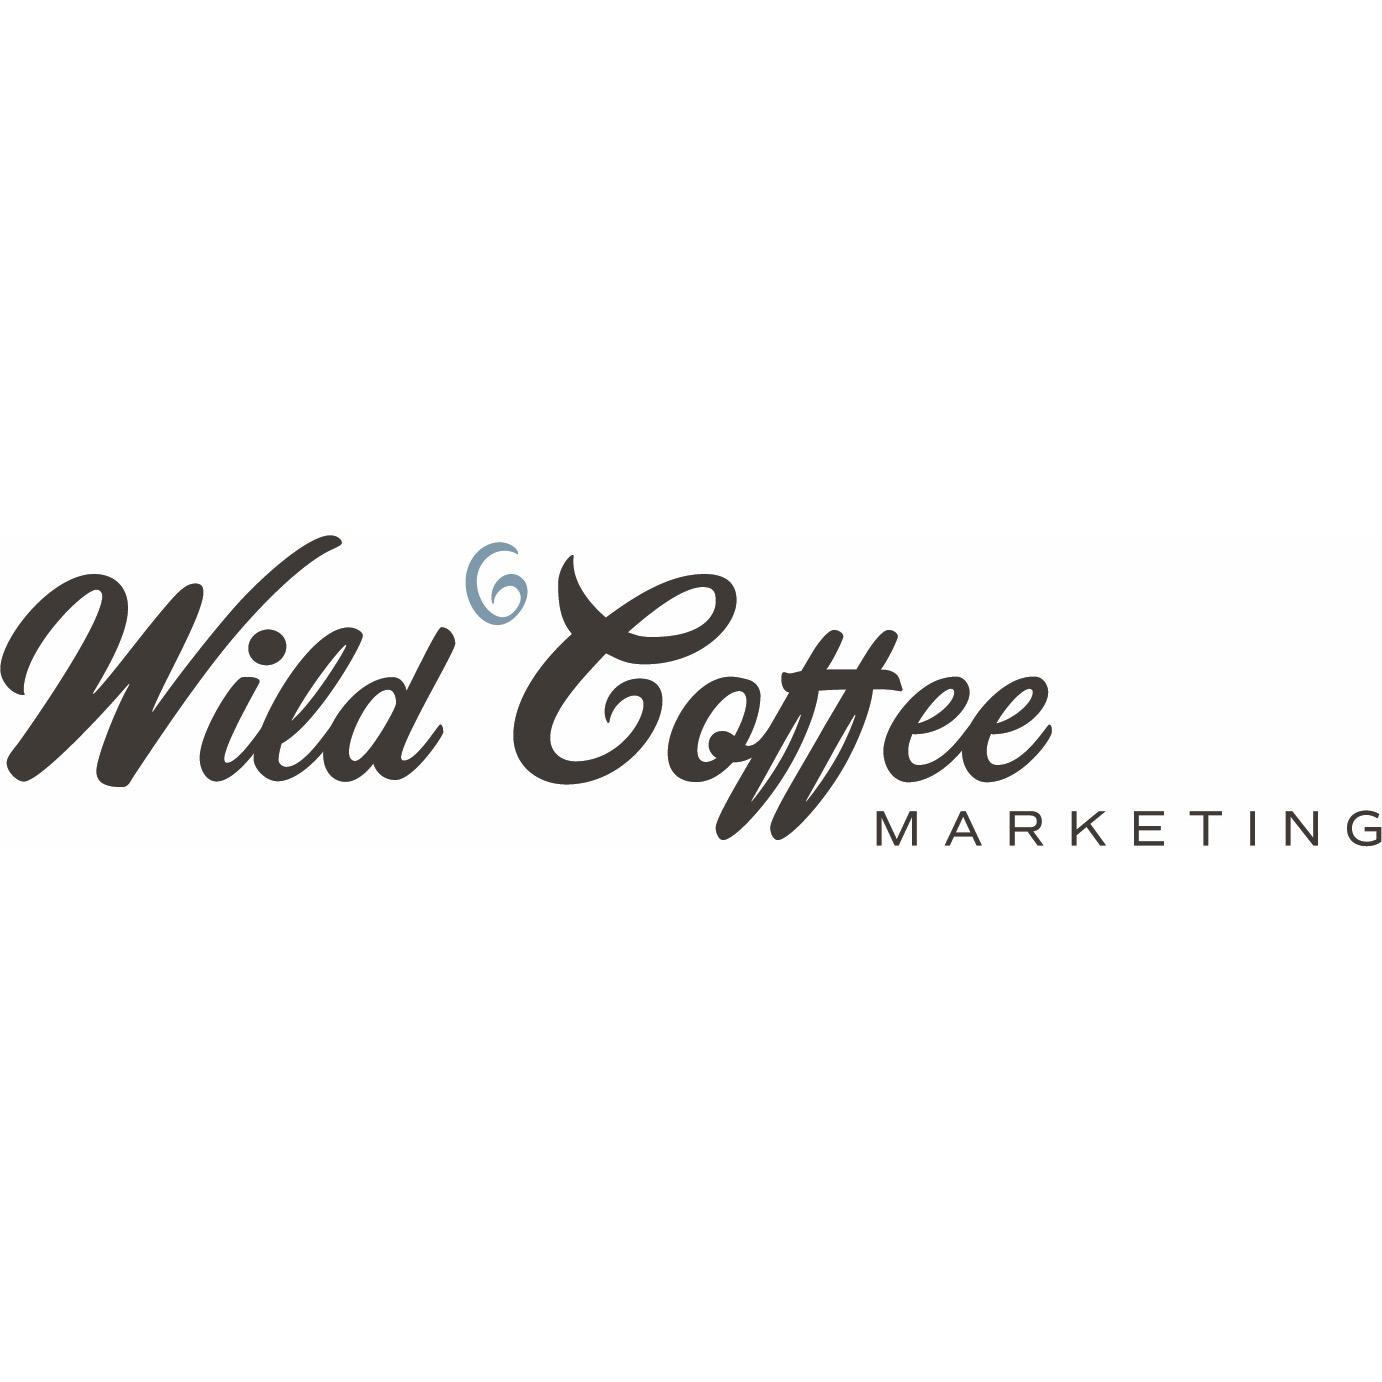 Wild Coffee Marketing